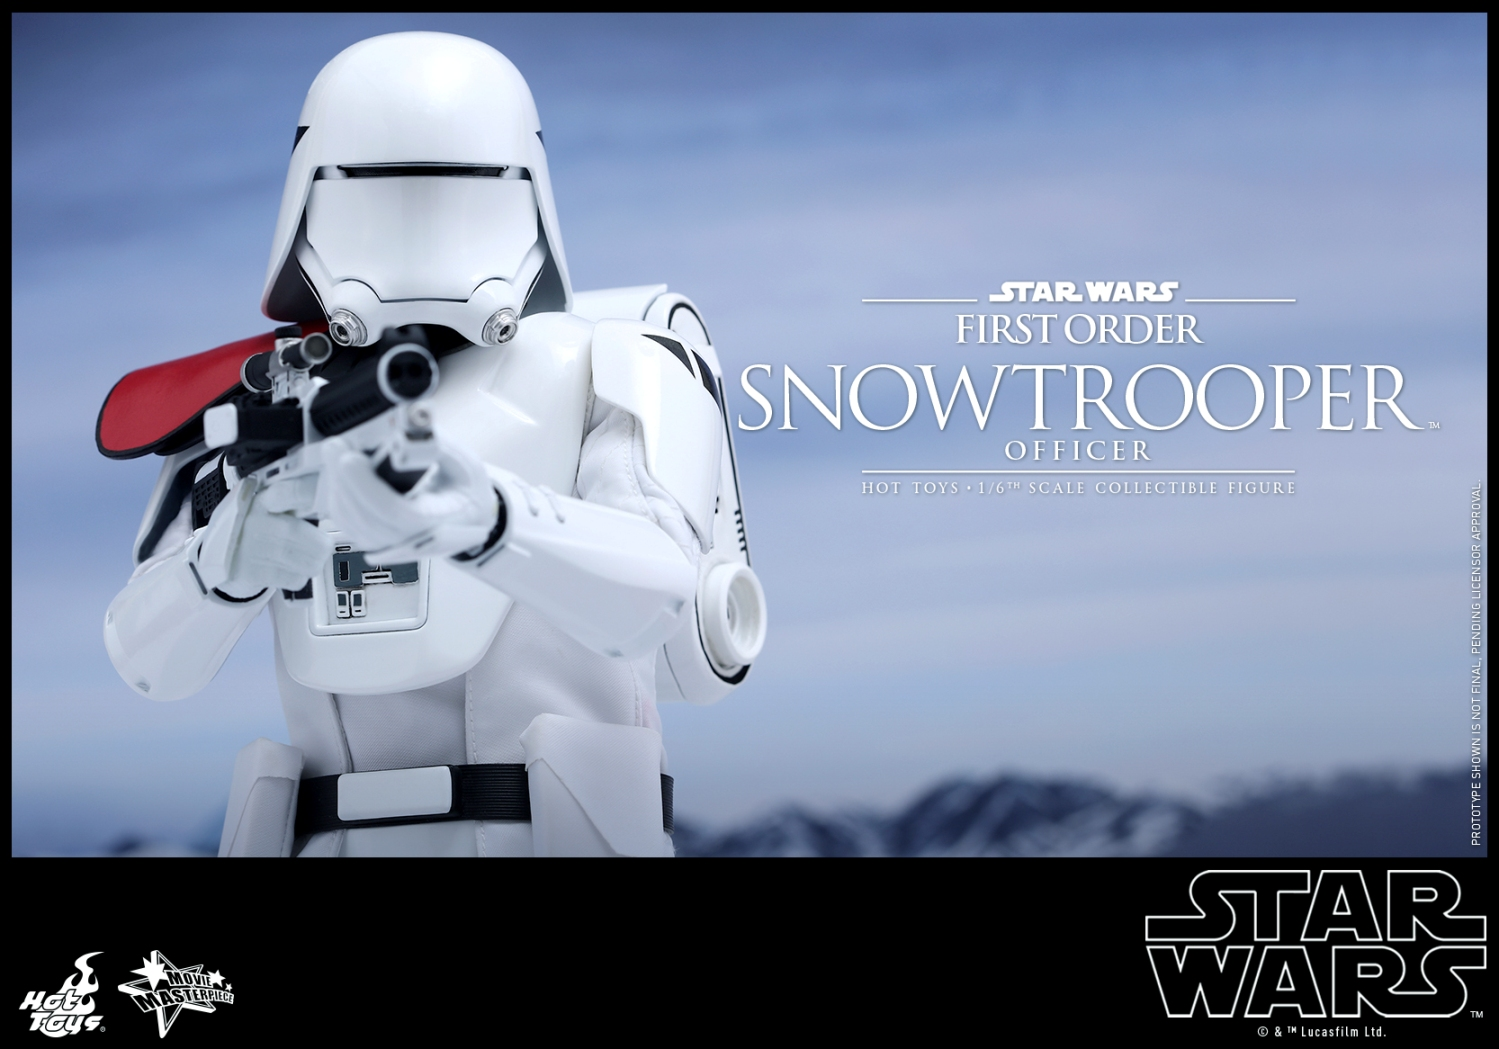 Hot Toys - Star Wars - The Force Awakens - The First Order Snowtrooper Officer Collectible Figure_PR8